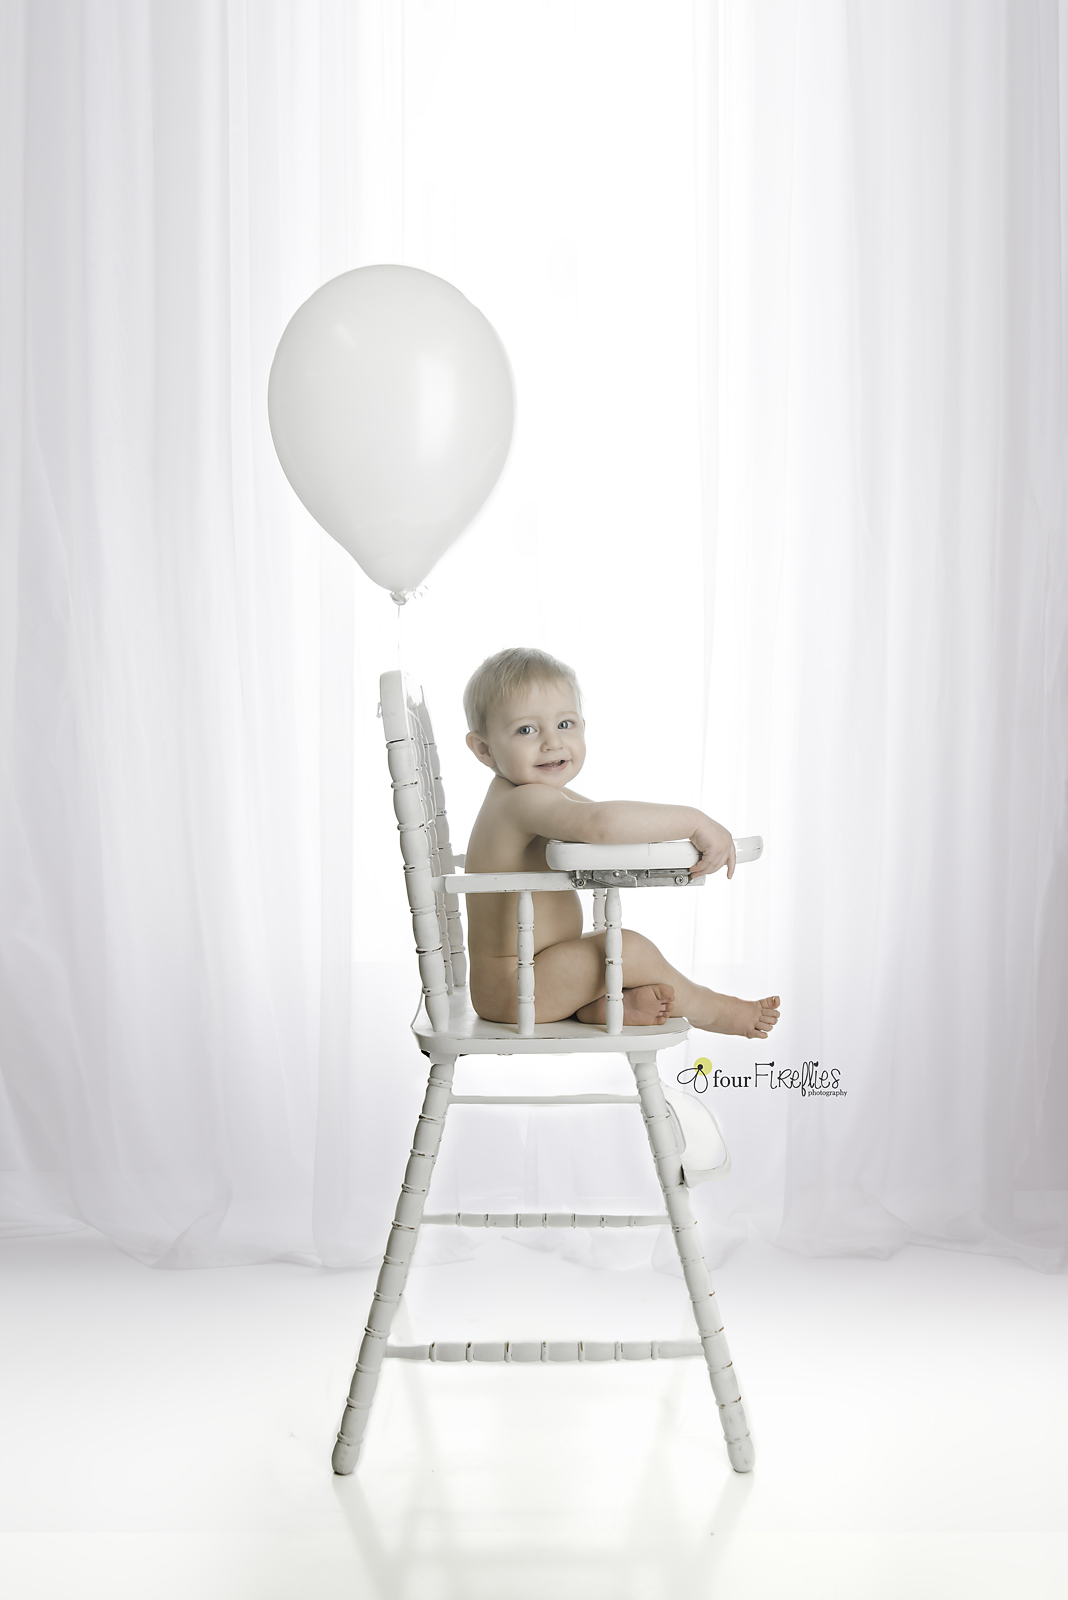 st-louis-photography-studio-first-birthday-baby-boy-in-high-chair-with-balloon-all-white-simple.jpg